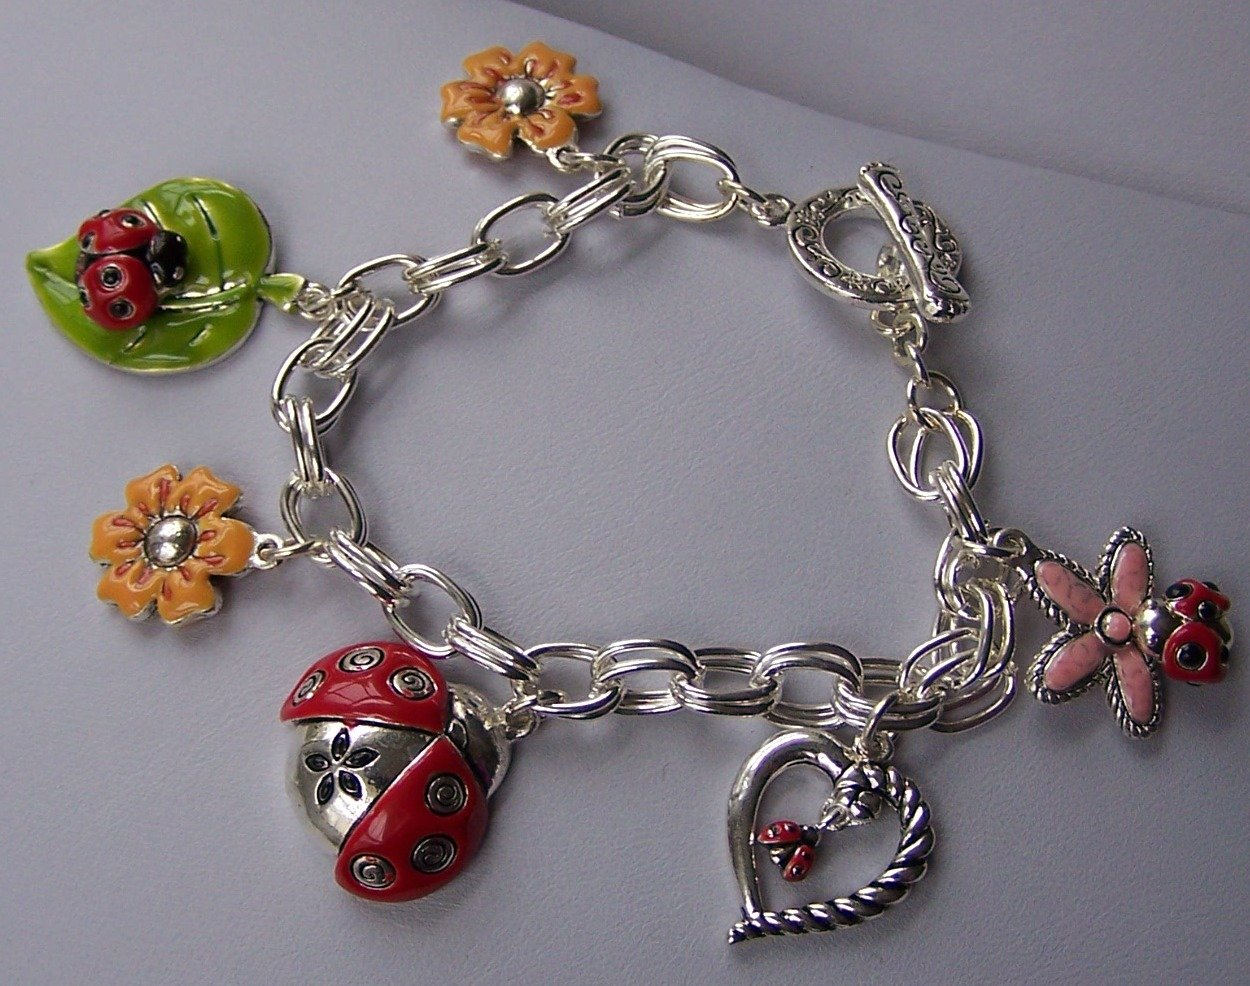 Spring Flower Heart Love Ladybug Lady Bug Leaf Charm Bracelet